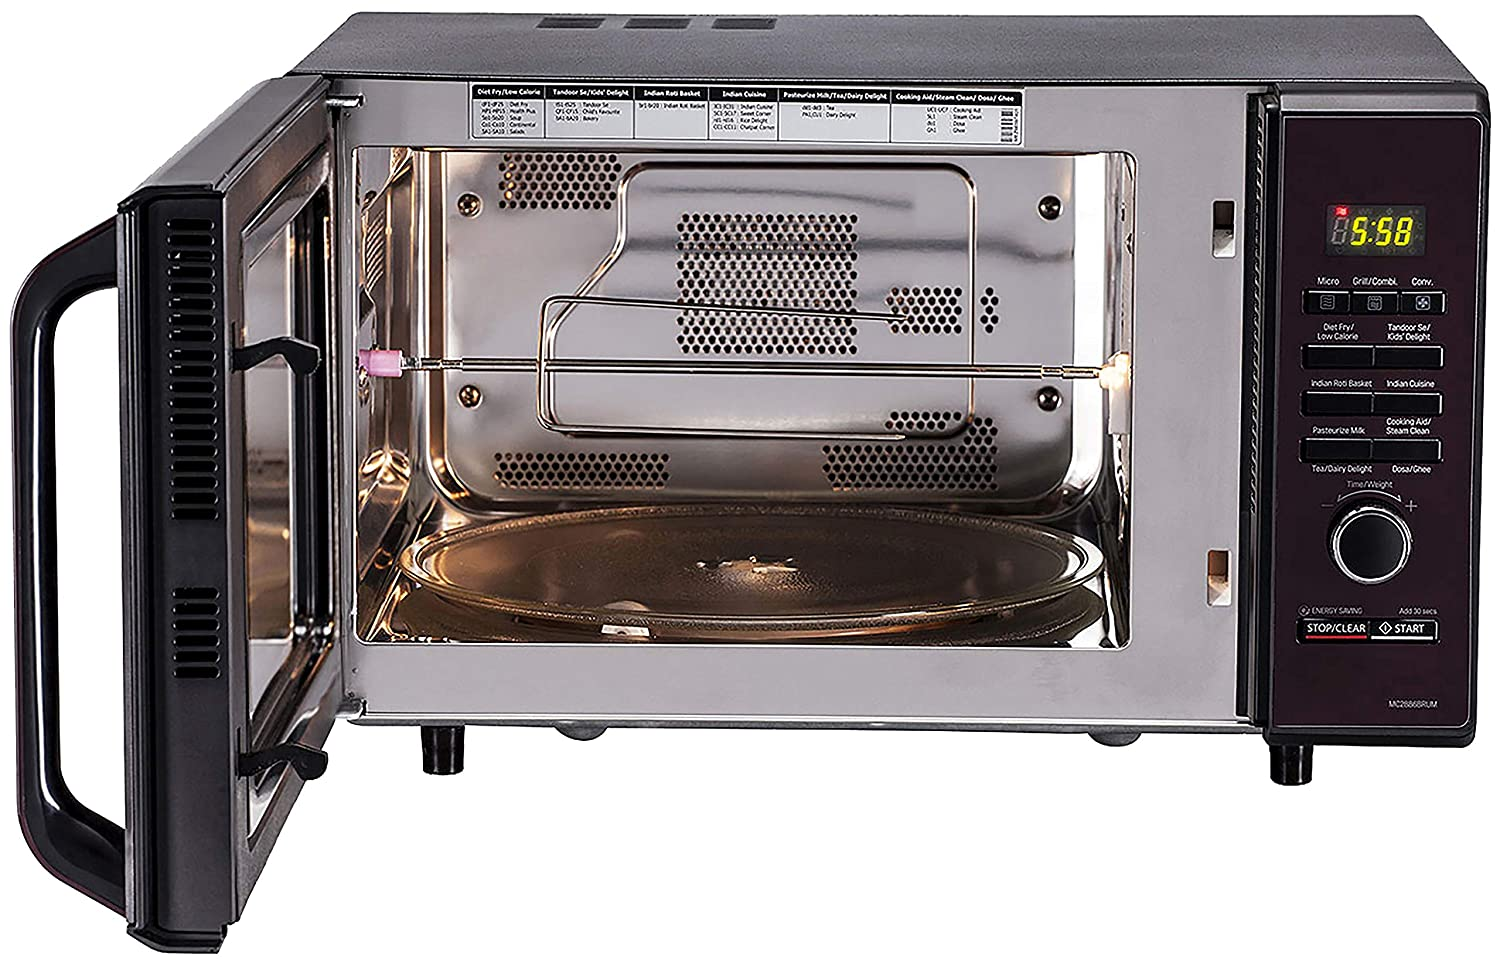 lg-microwave-oven-india-best-image